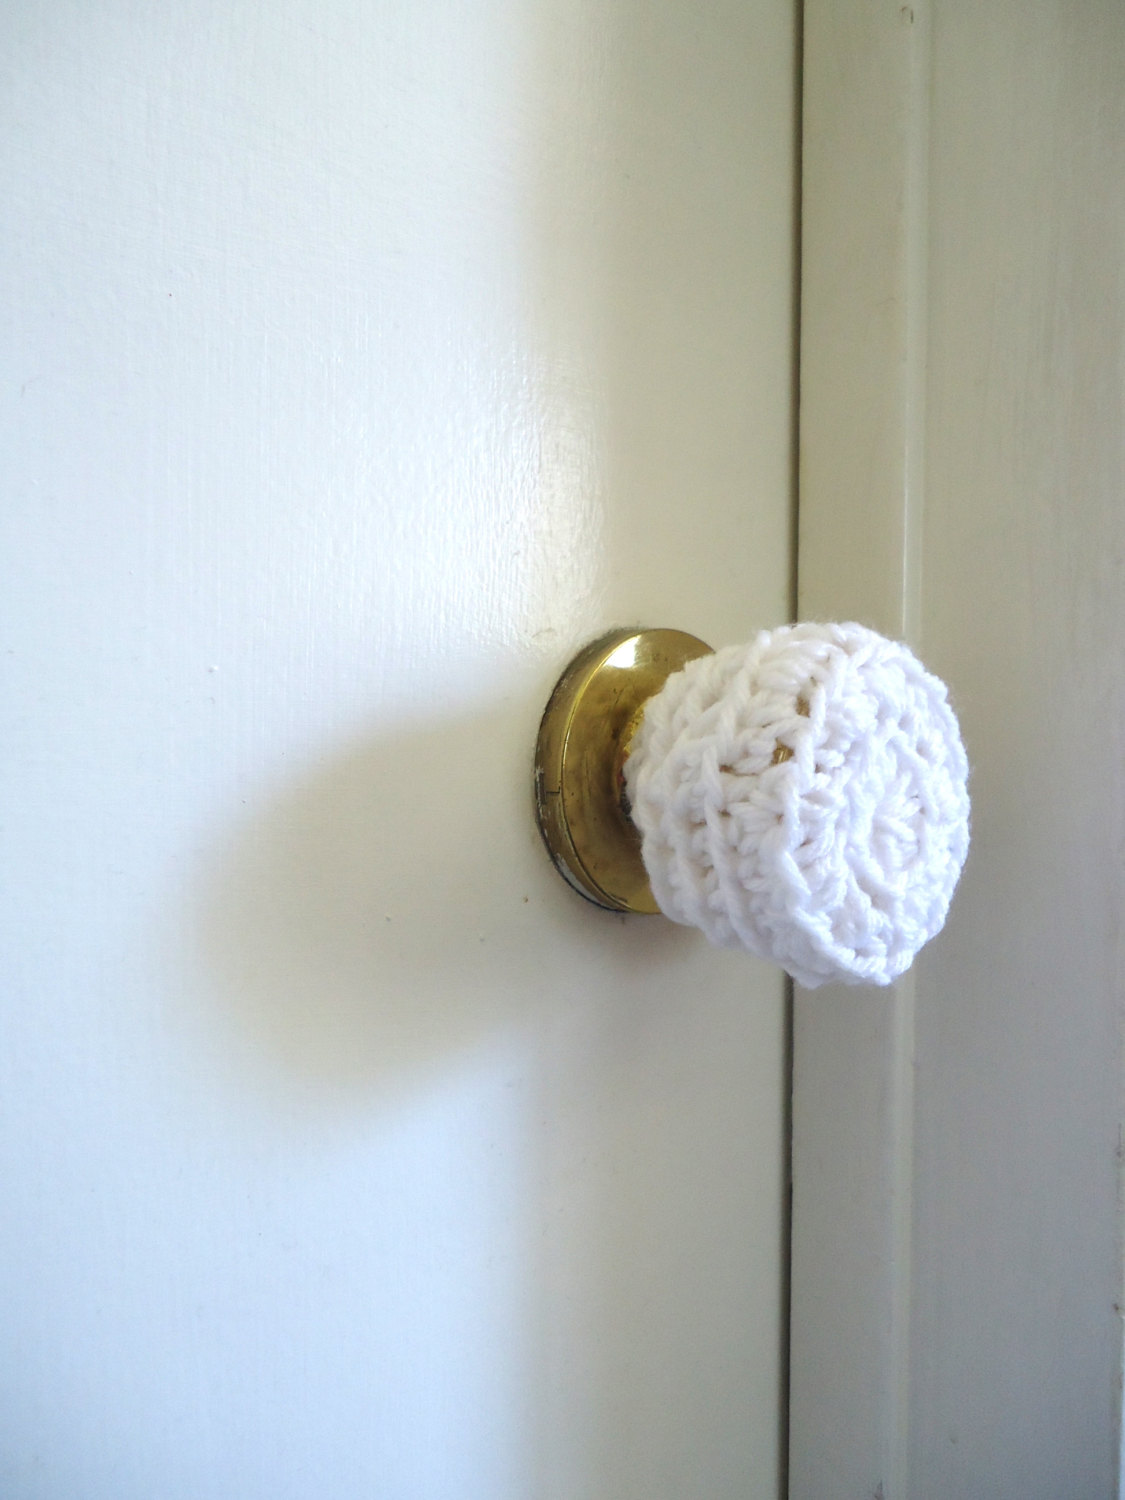 baby safety door knob covers photo - 1